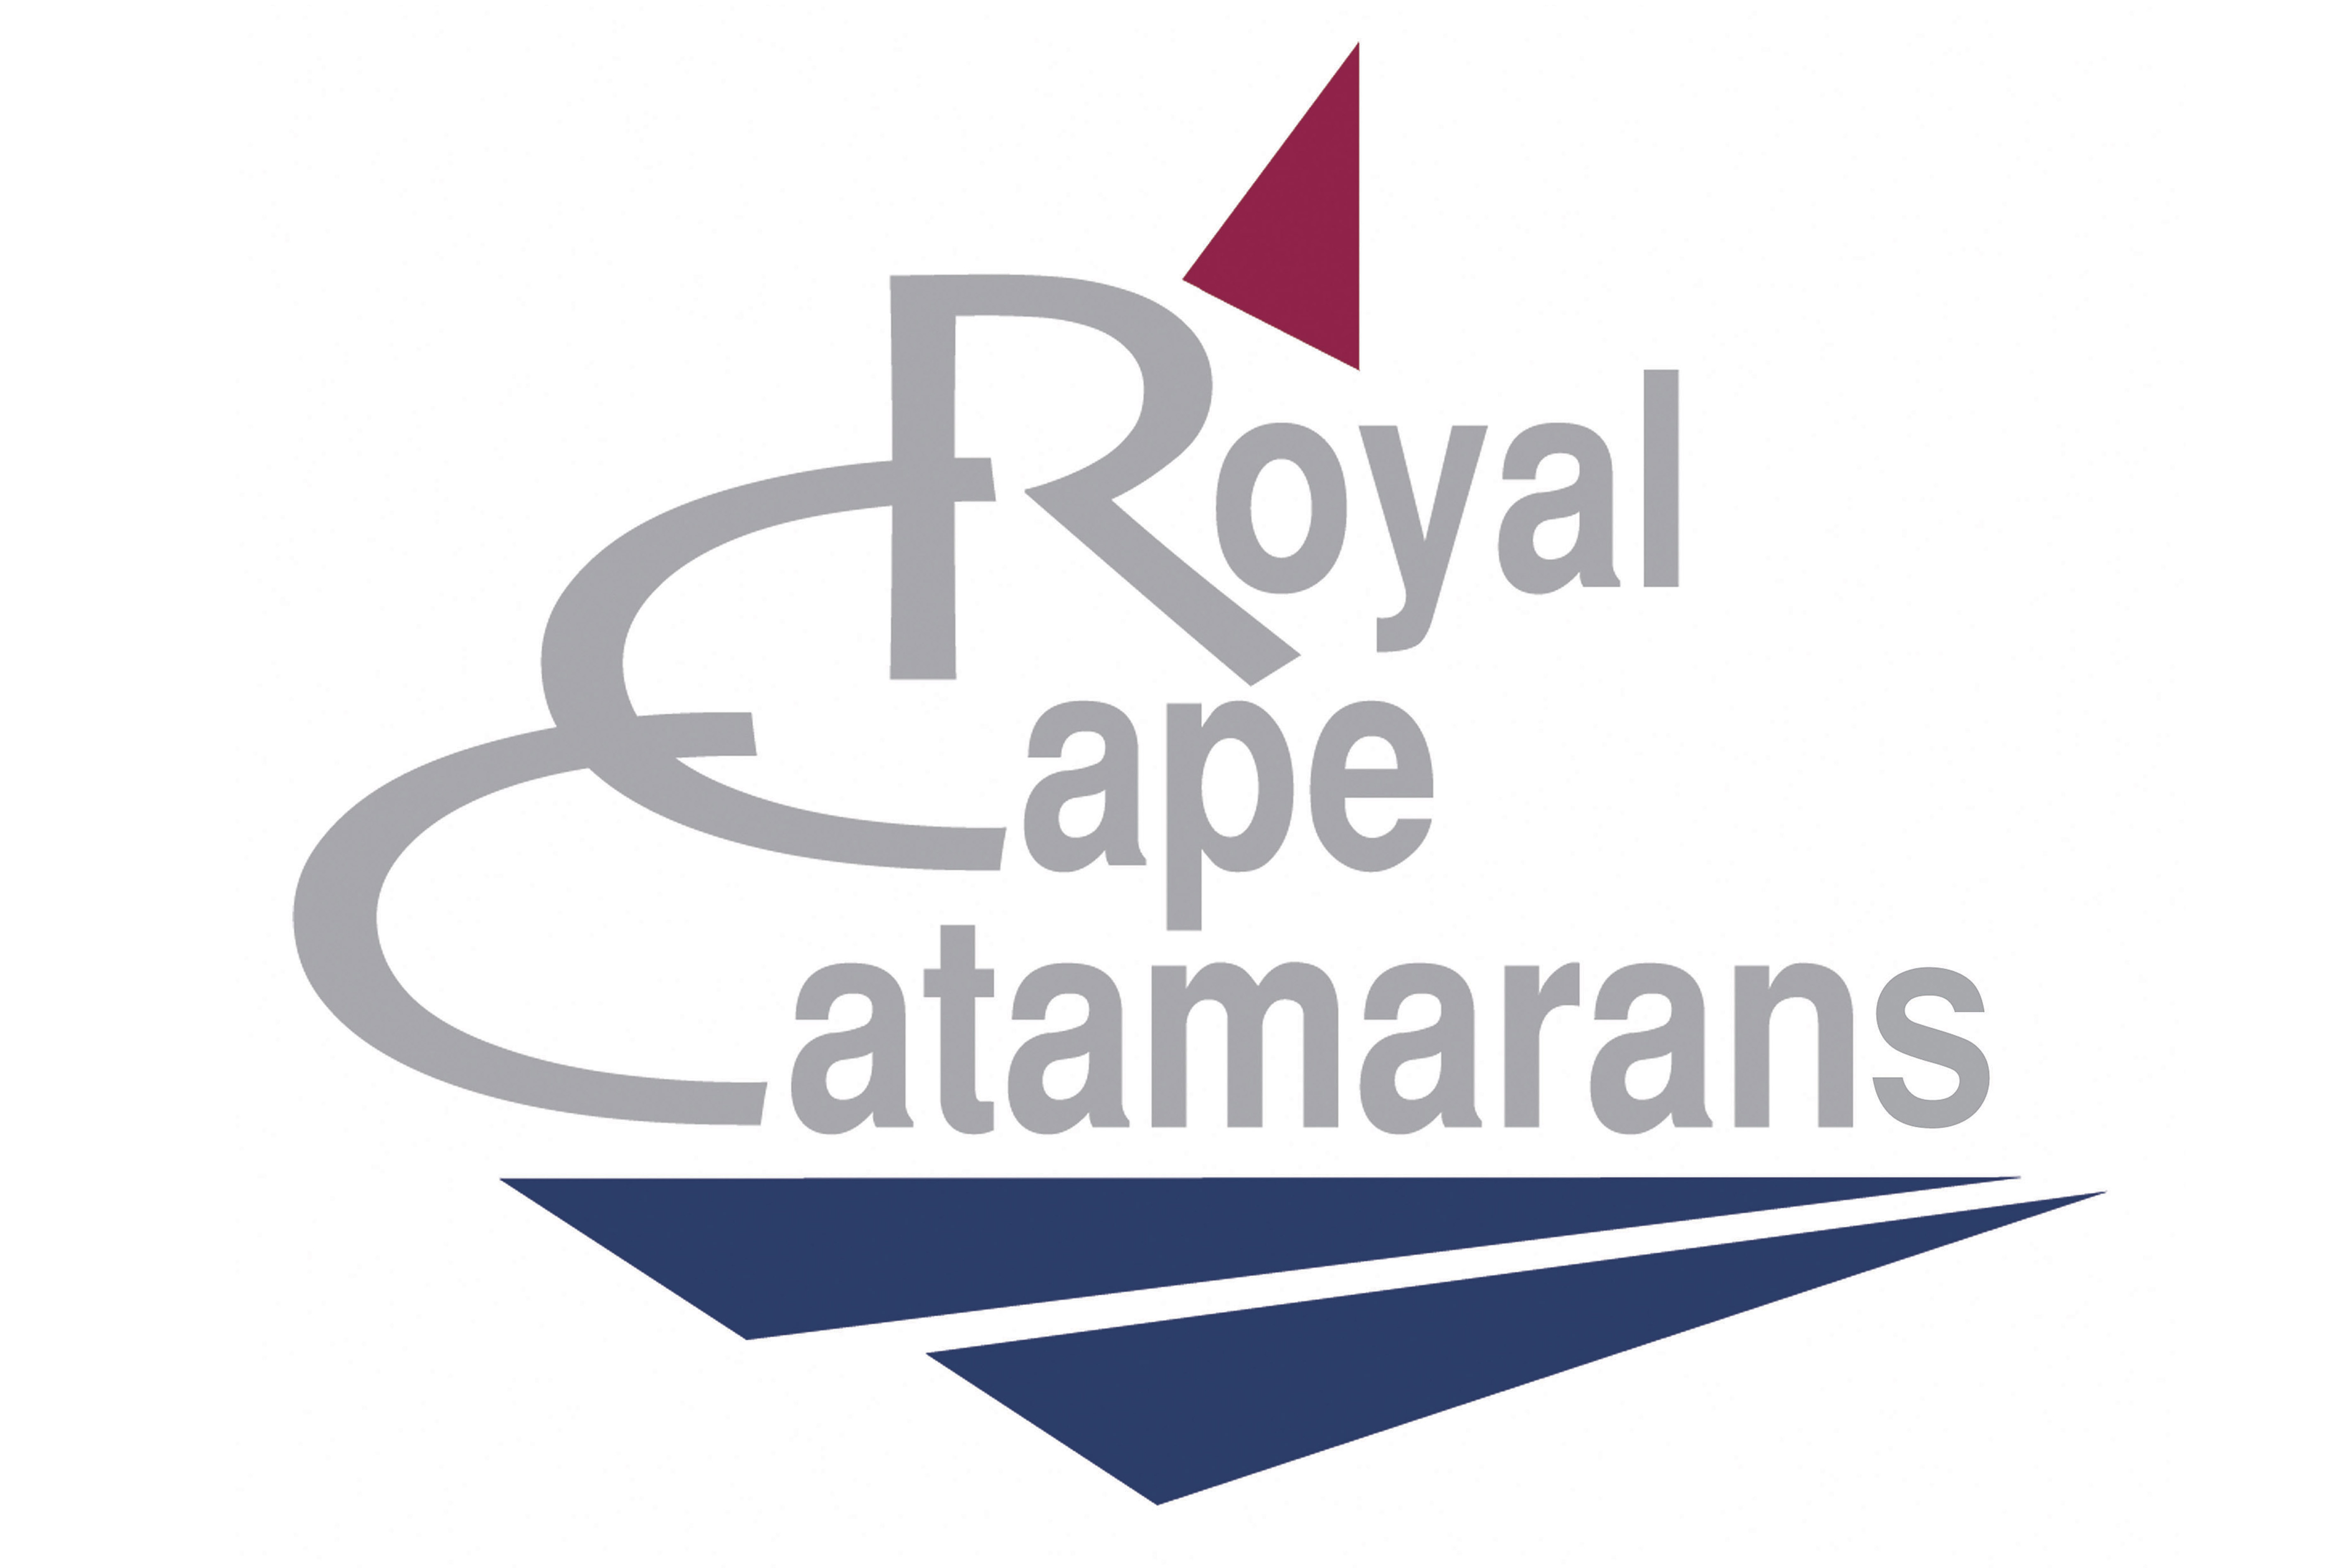 Royal Cape Catamarans logo 4x6